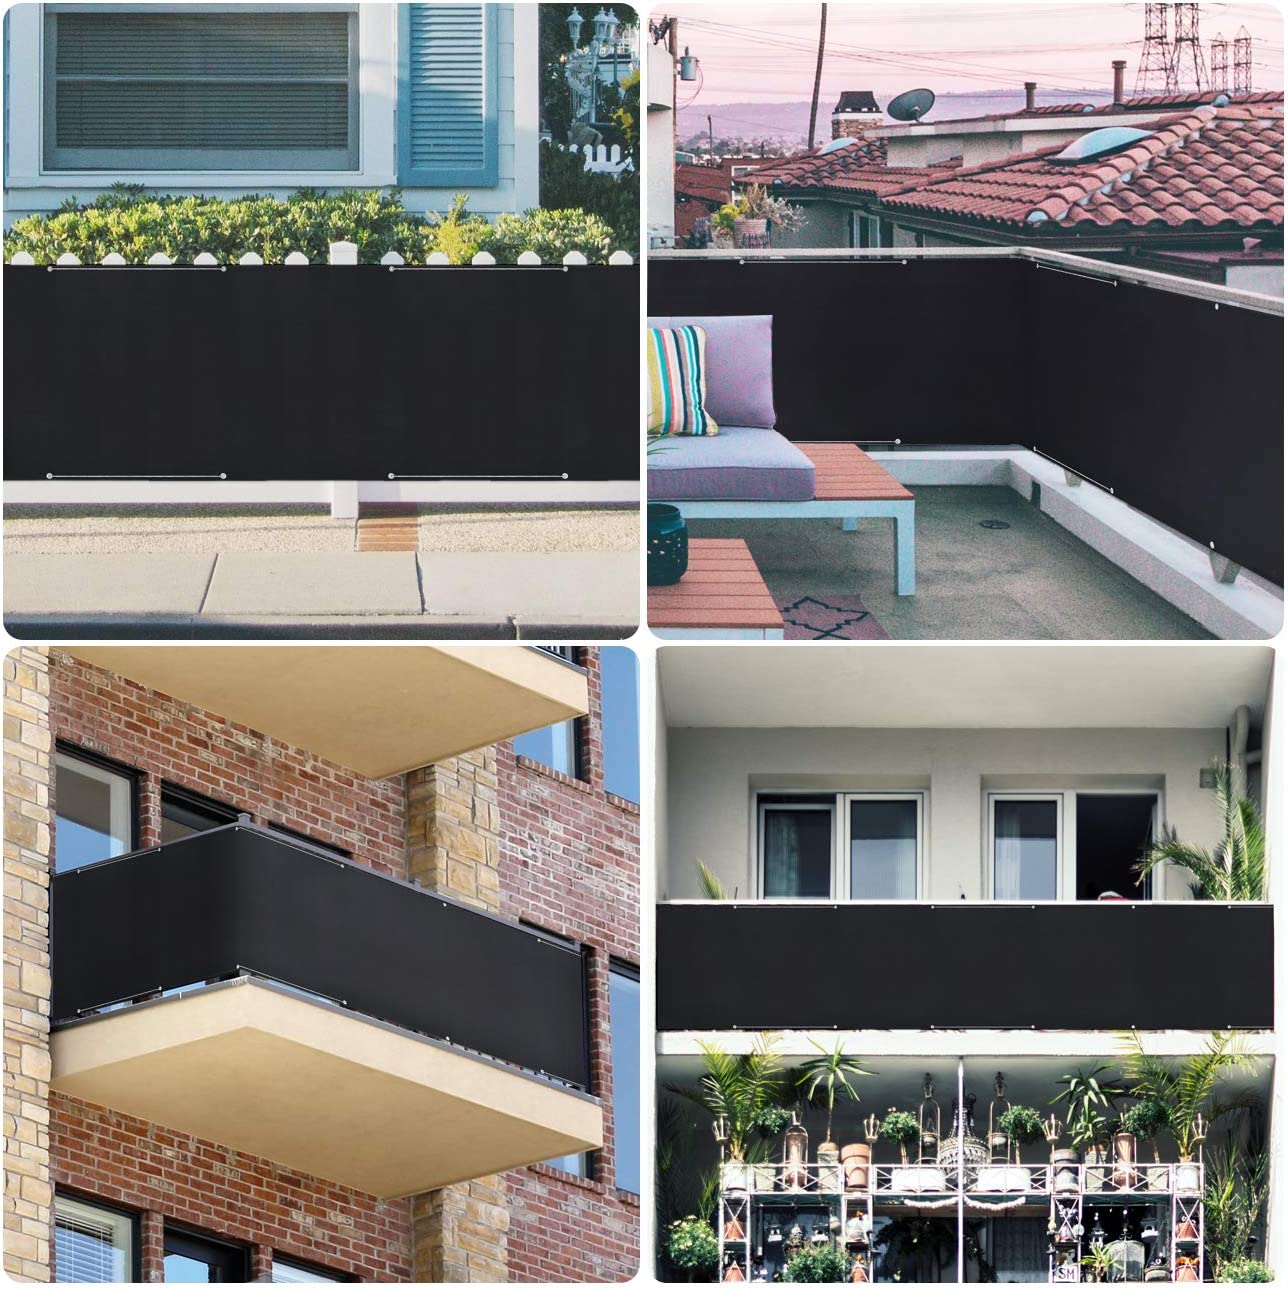 Sekey Balcony Privacy Screen Balcony Cover Opaque Wind and UV Protection Black 100/% Privacy 75 x 500 cm Nylon Cable Ties and Cord with Eyelets